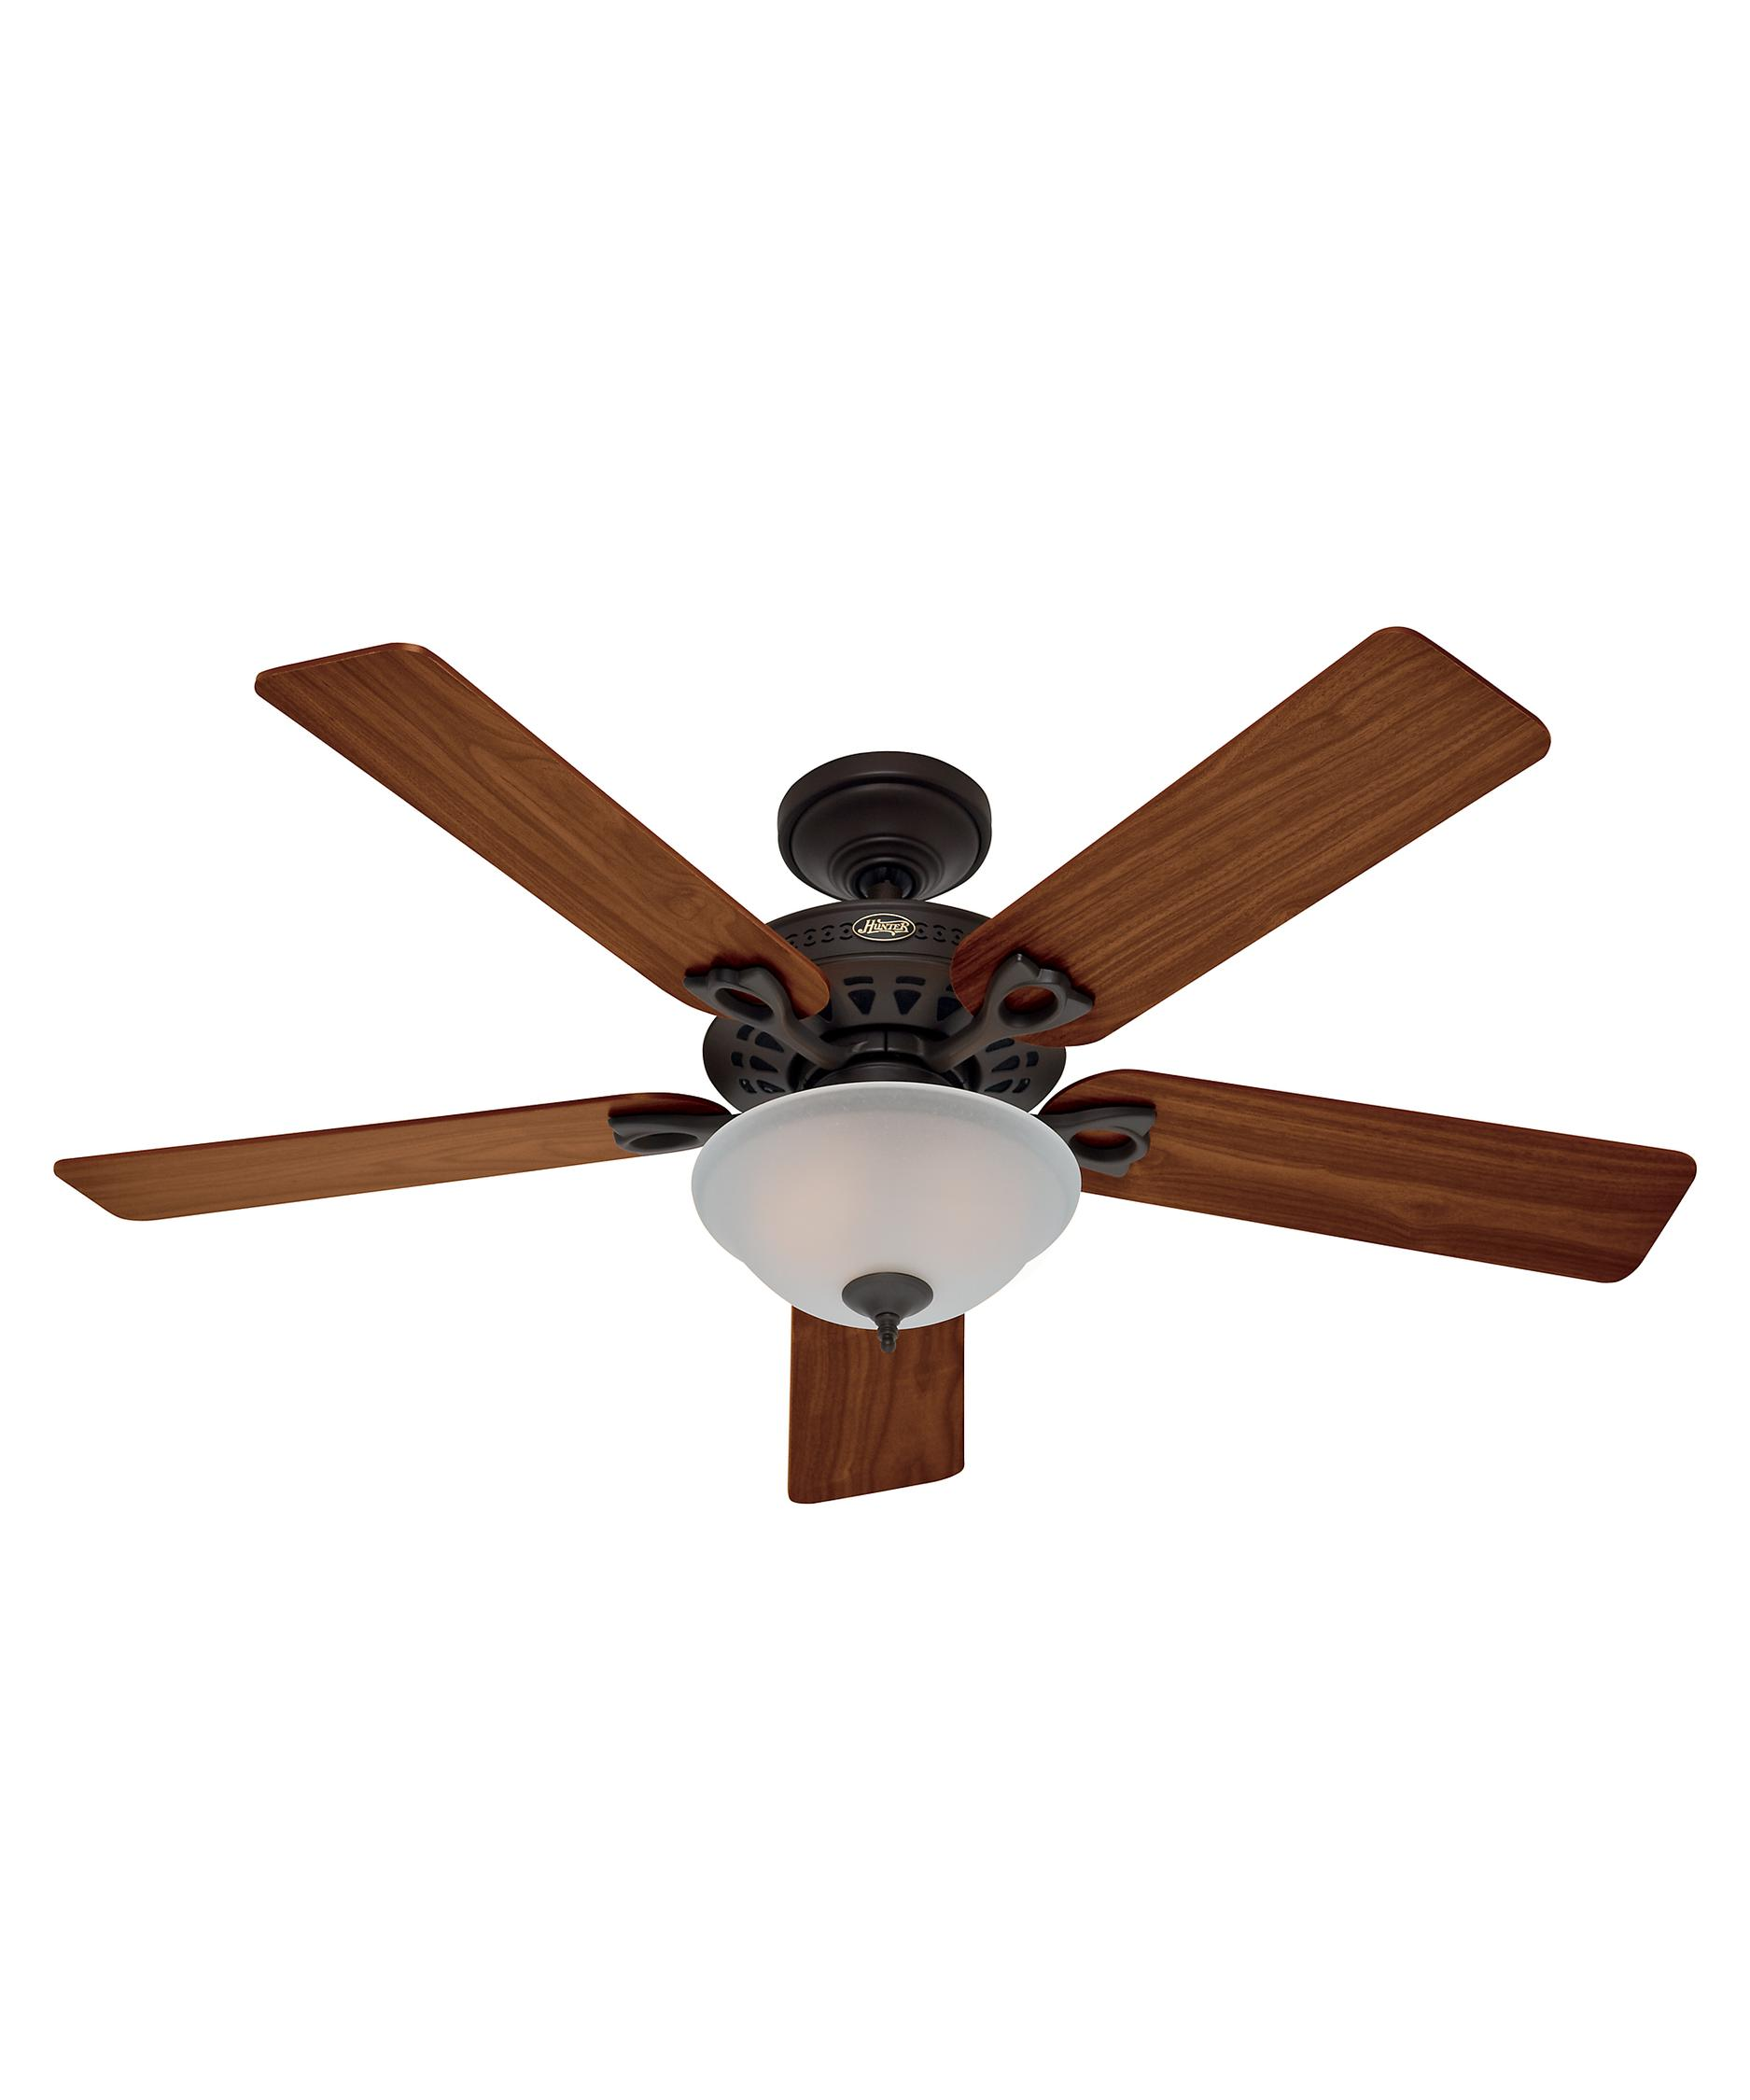 Hunter Fan 53057 Astoria 52 Inch Ceiling Fan With Light Kit | Capitol ...